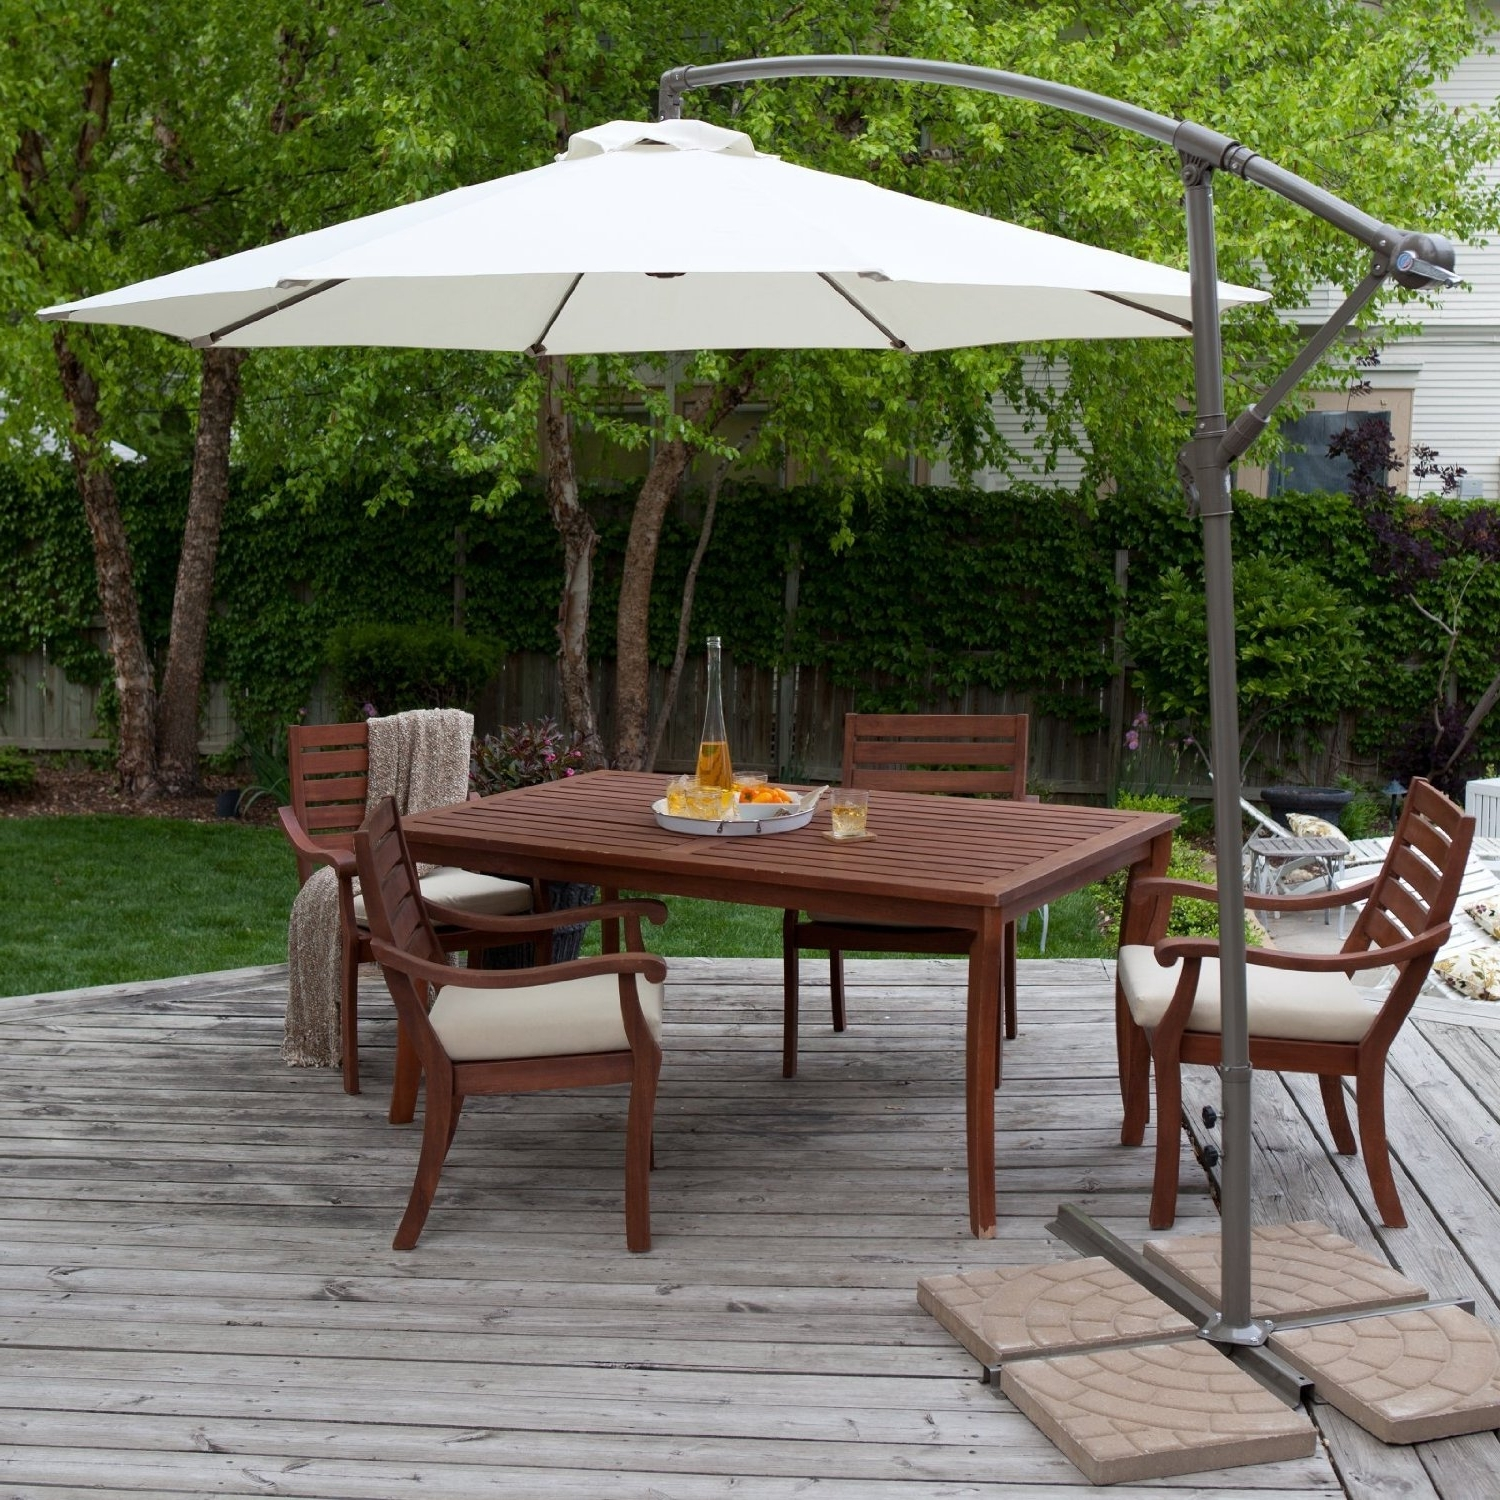 Widely Used Free Standing Umbrellas For Patio In Umbrella For Outdoor Table Amazing Patio Chair With 6 Random  (View 20 of 20)